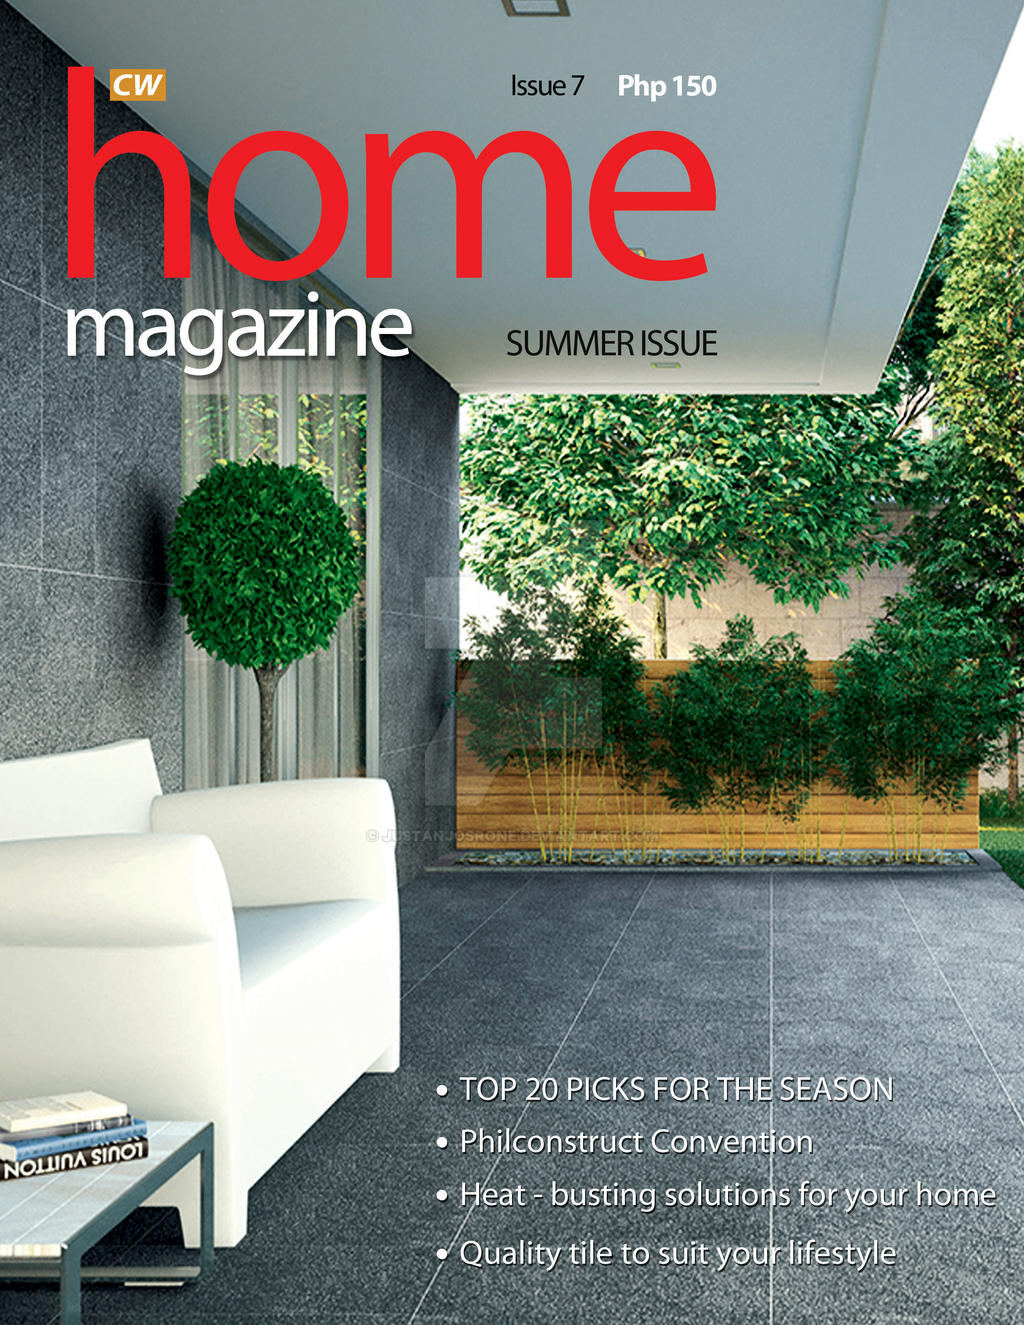 2013 cw home depot magazine cover proposal 02 by justanjosrone on deviantart Cw home depot furnitures